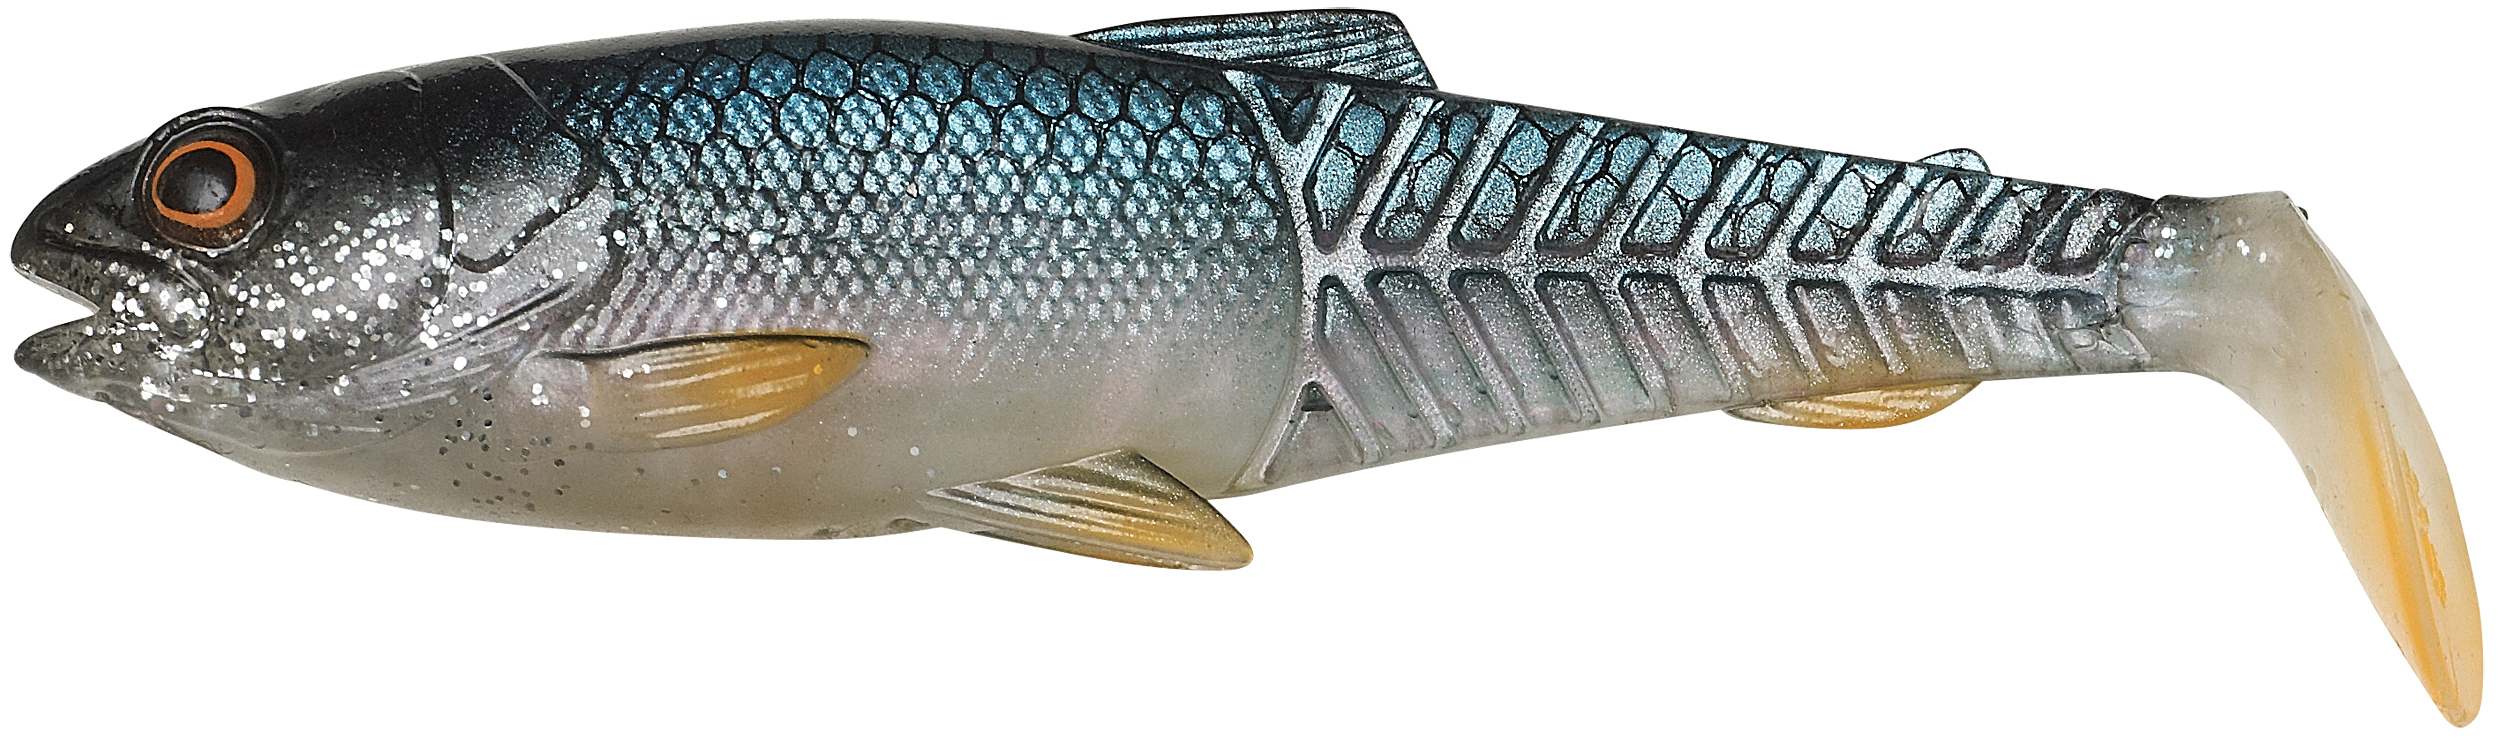 Savage Gear-Craft Cannibal Paddletail 8,5cm Farbe Roach-1 - Gerlinger.de